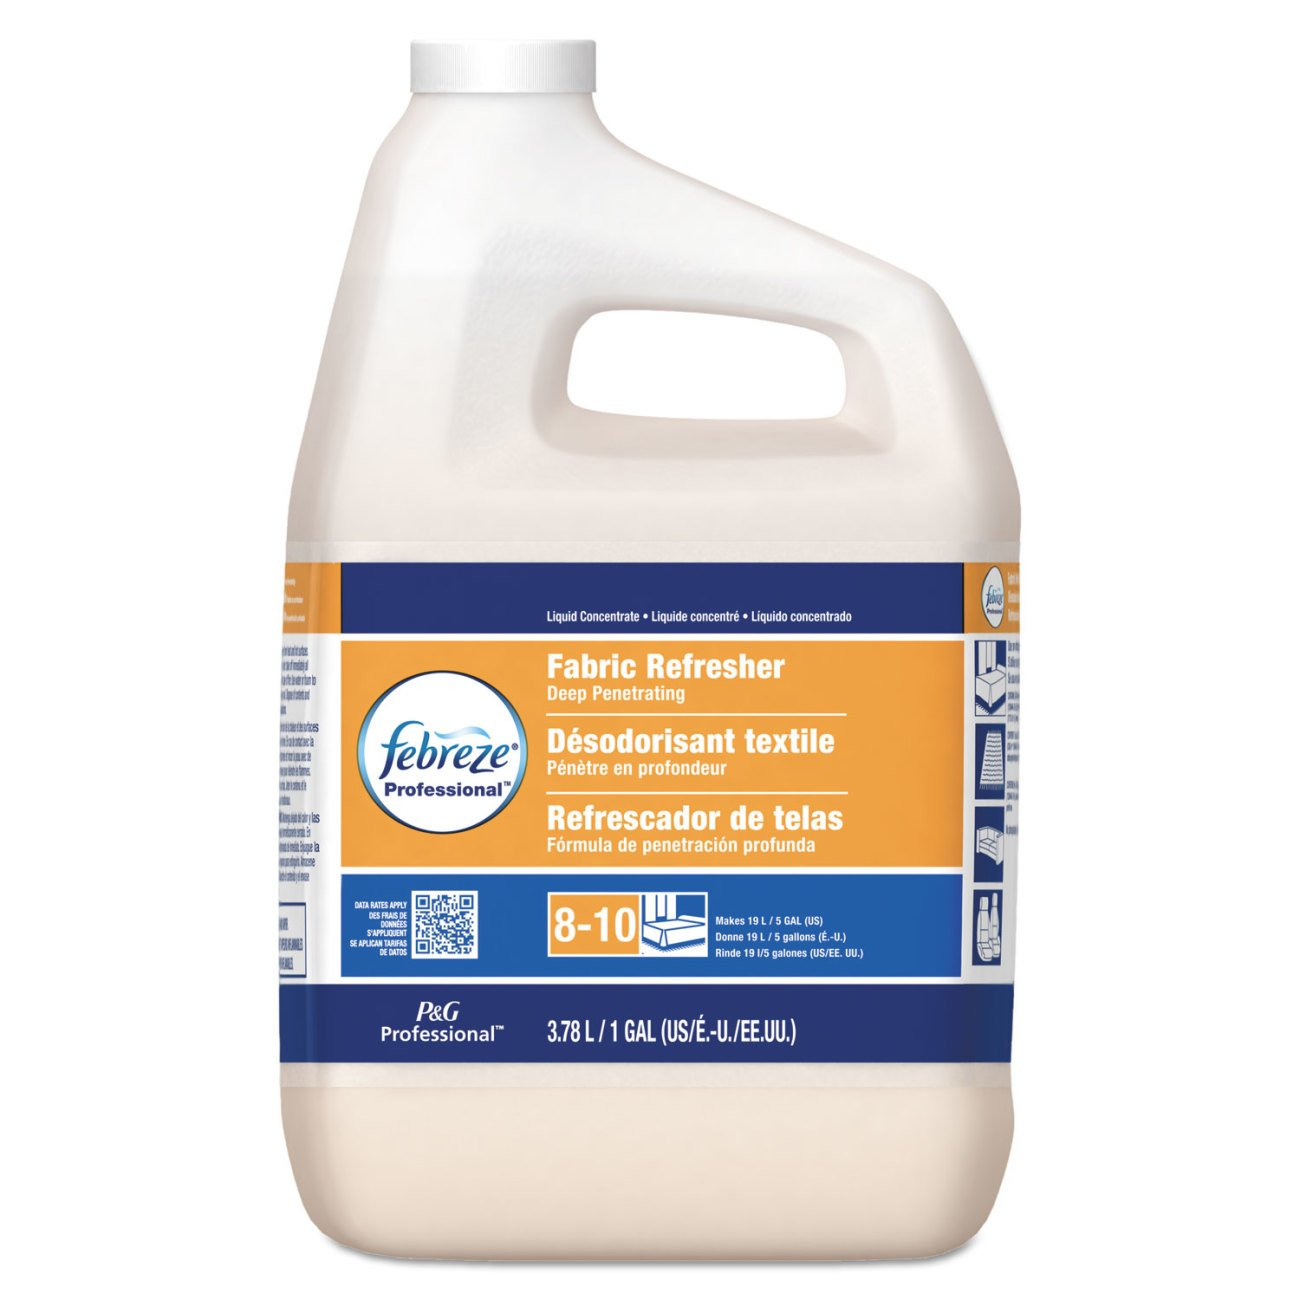 Febreze 36551 Professional Fabric Refresher Deep Penetrating, 5X Concentrate, 1 Gallon (Case of 2)